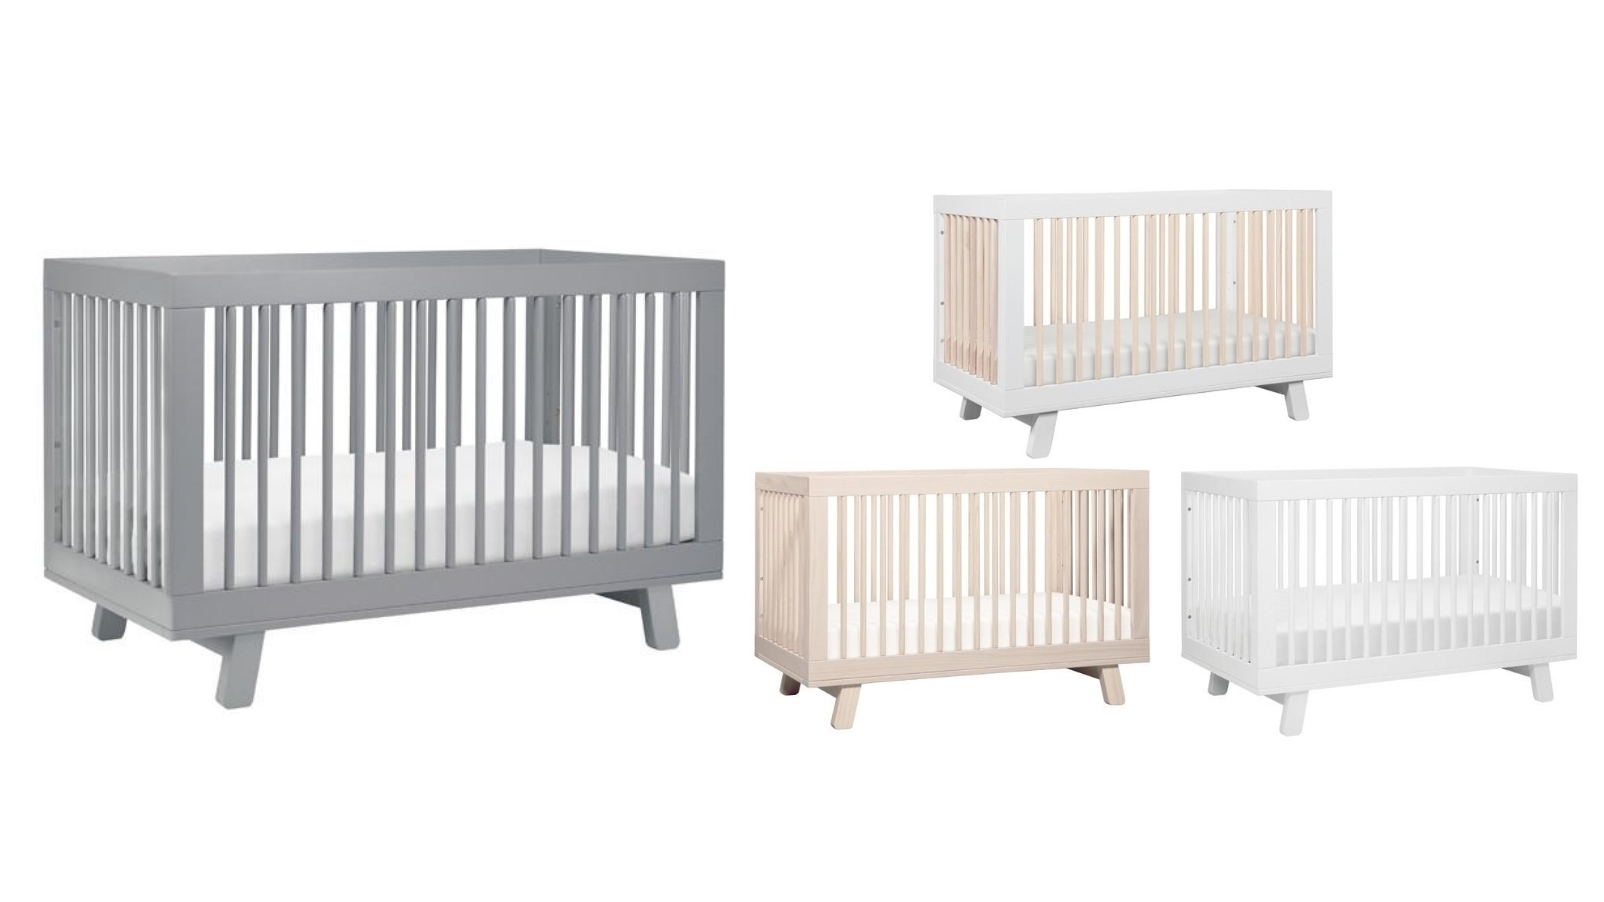 Image of Babyletto Hudson 3-in-1 Convertible Cot